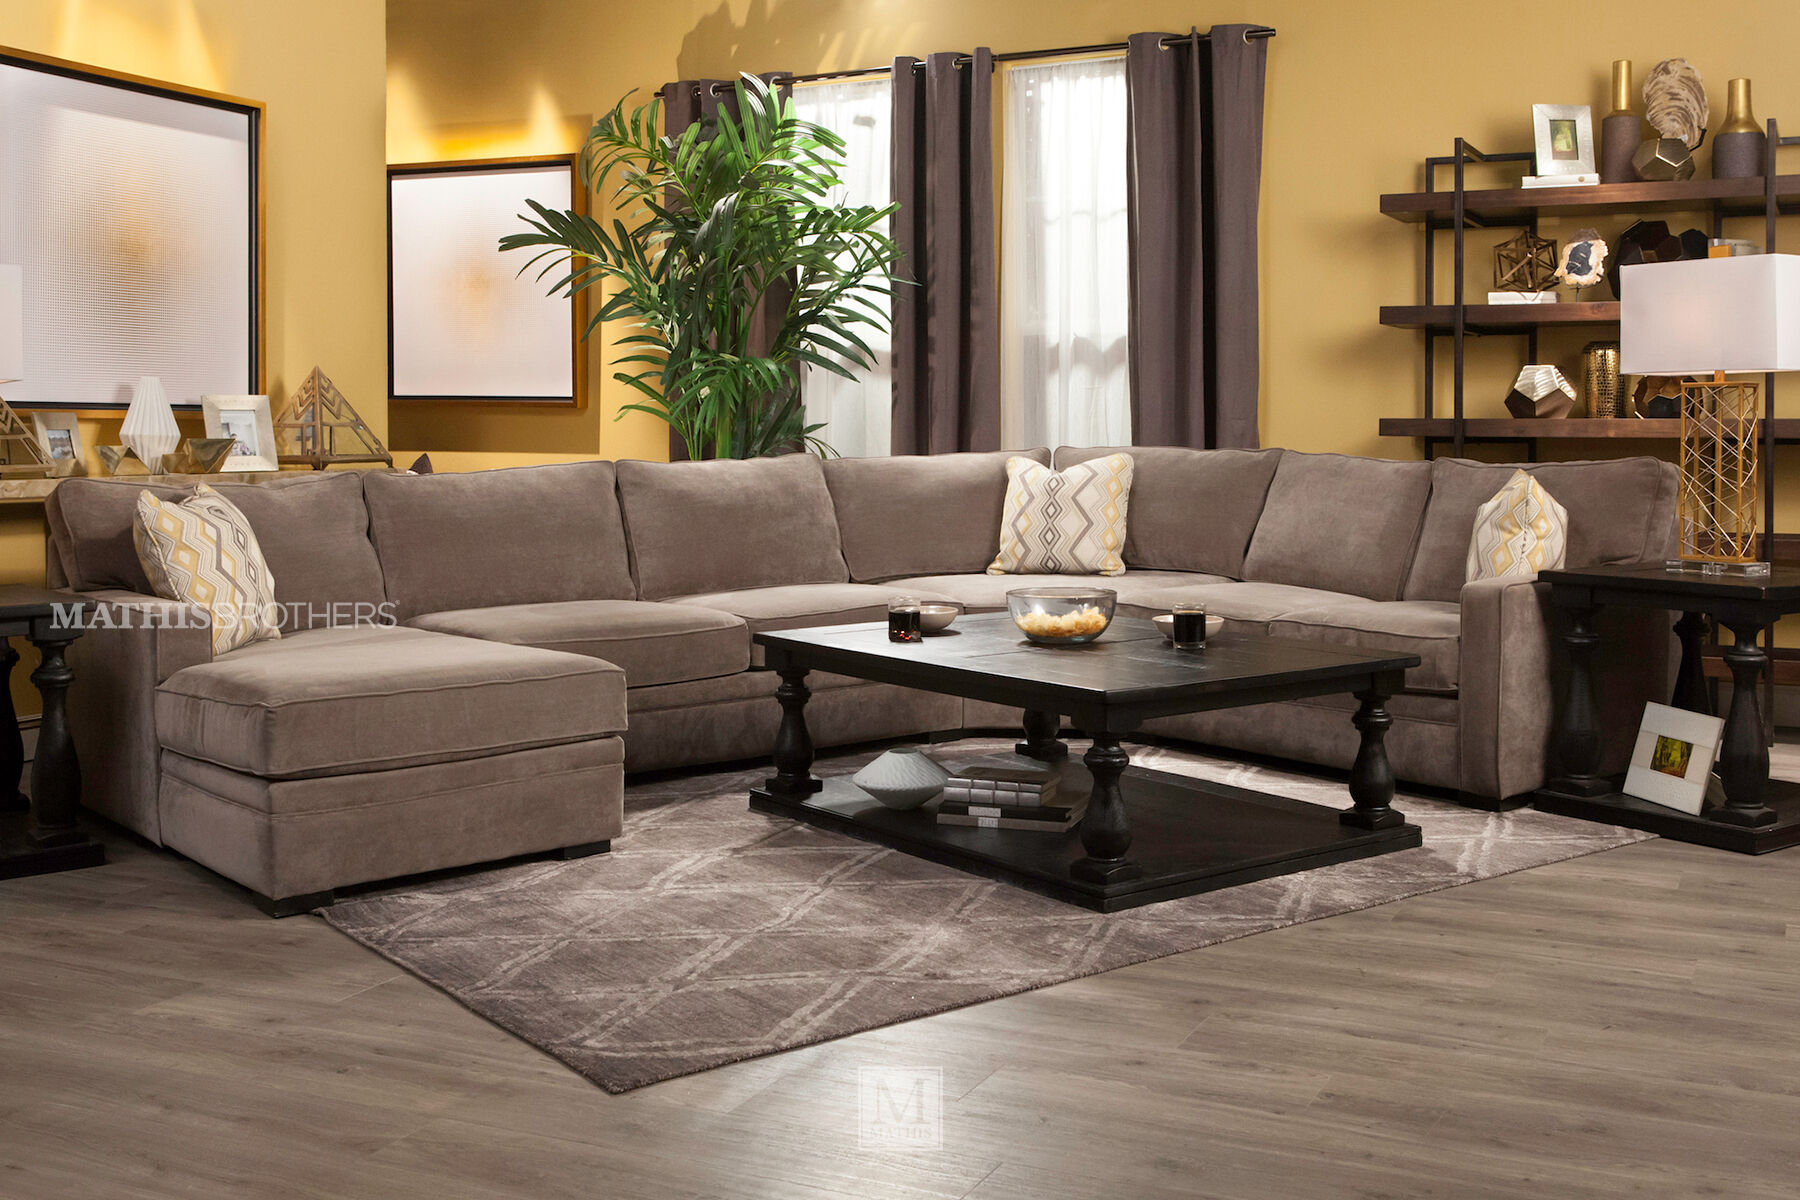 jonathan louis sofas loveseat sofa bed leather choices juno four-piece sectional | mathis ...